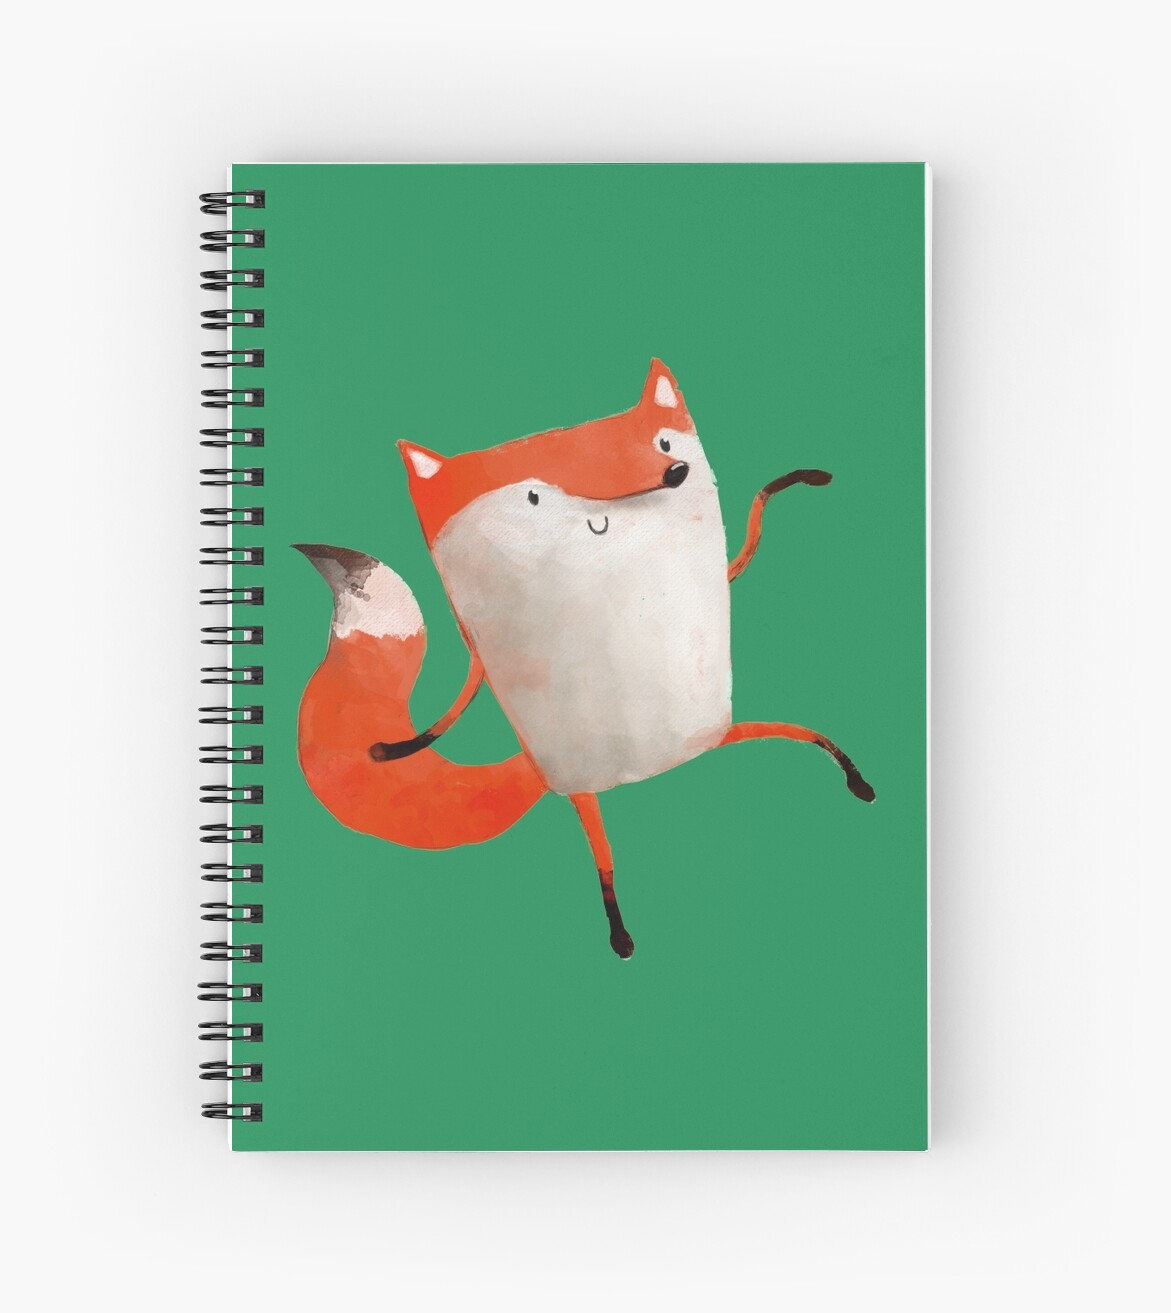 Happy Dancing Fox by colonelle